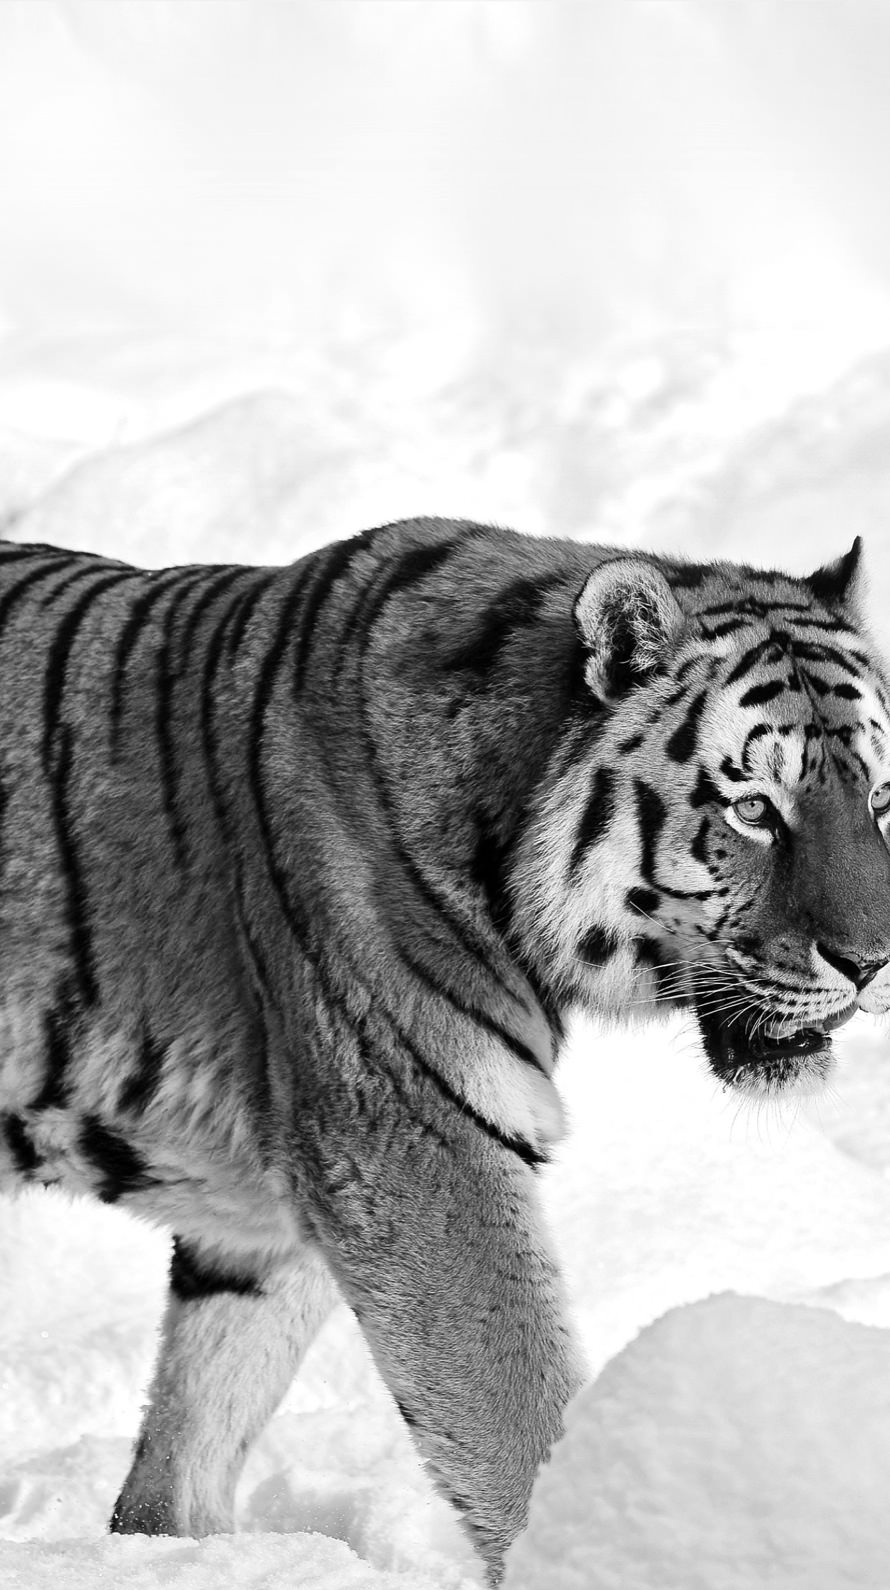 Black Tiger Wallpaper For Iphone 6 The Galleries Of Hd Wallpaper